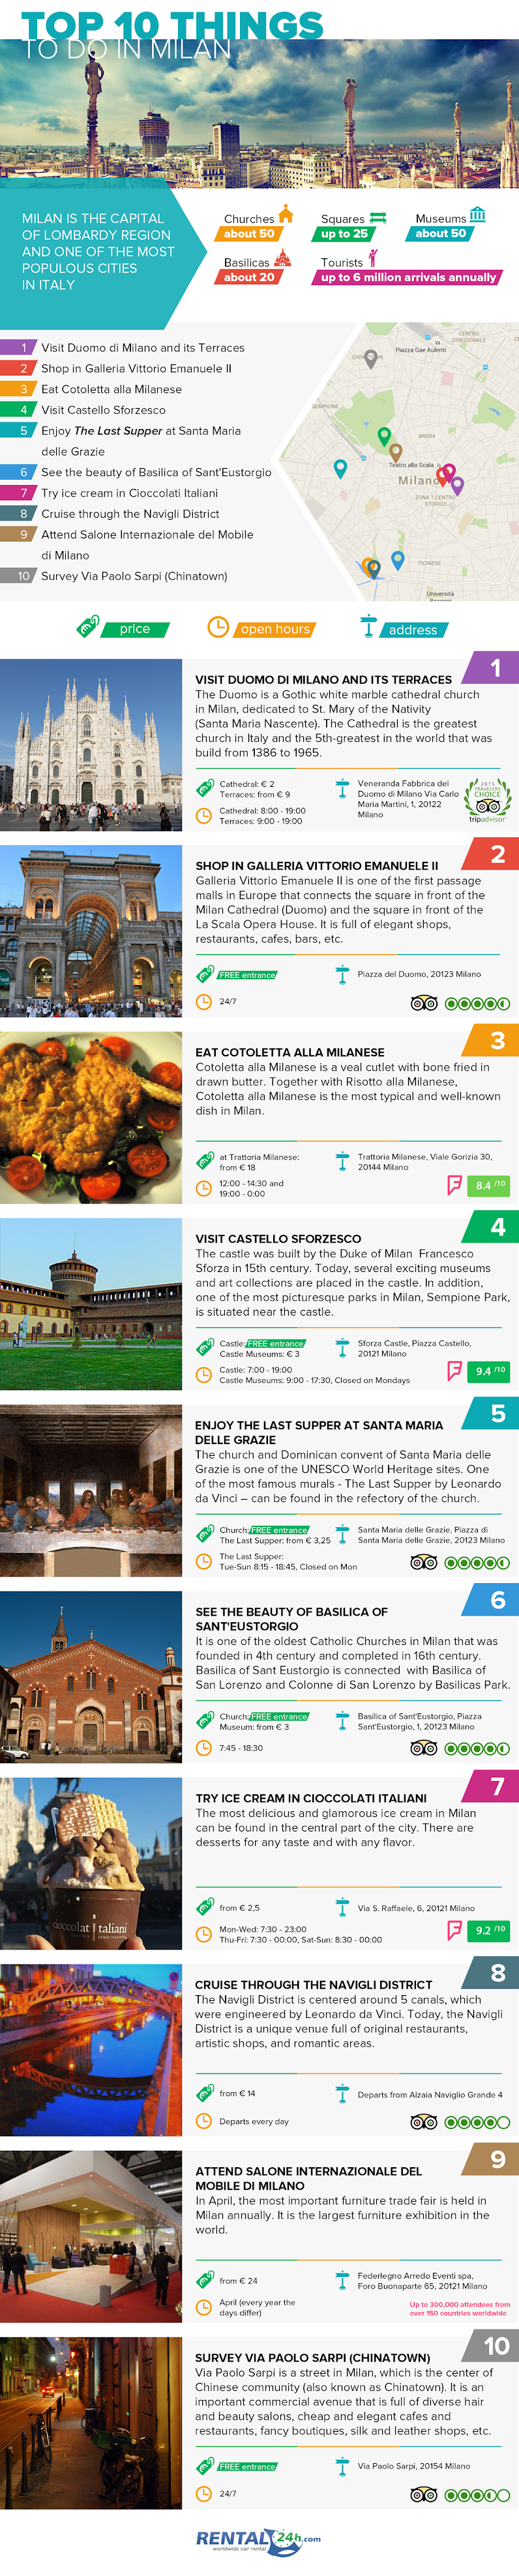 Top 10 things to do in Milan #infographic